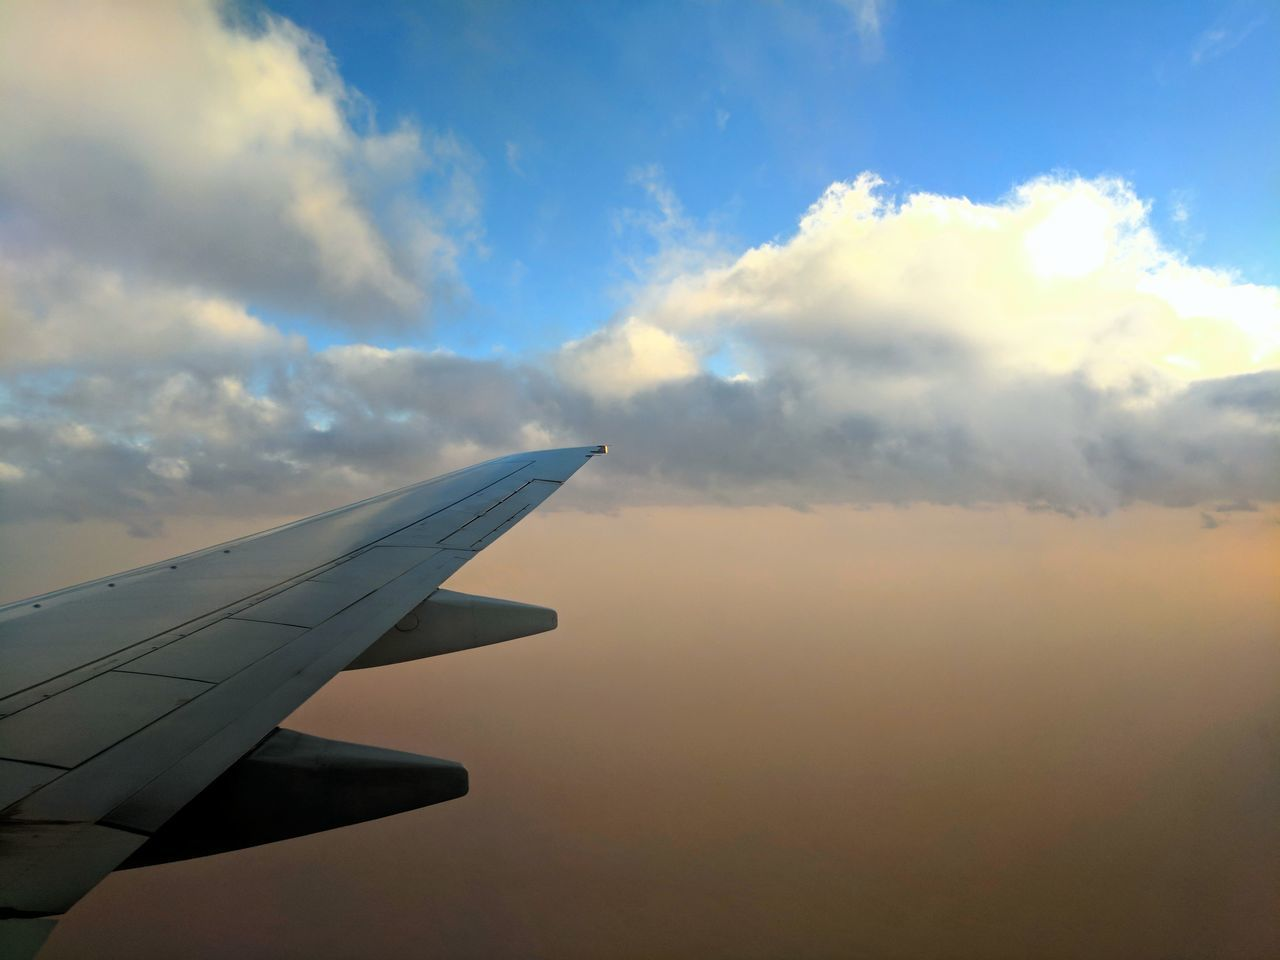 Airplane Flying Cloud - Sky Sky Travel Aircraft Wing Transportation Journey Aerial View Commercial Airplane Aerospace Industry Plane Sky And Clouds Air Airport Air Vehicle Aircraft Airplane Wing No People Outdoors Nature Day